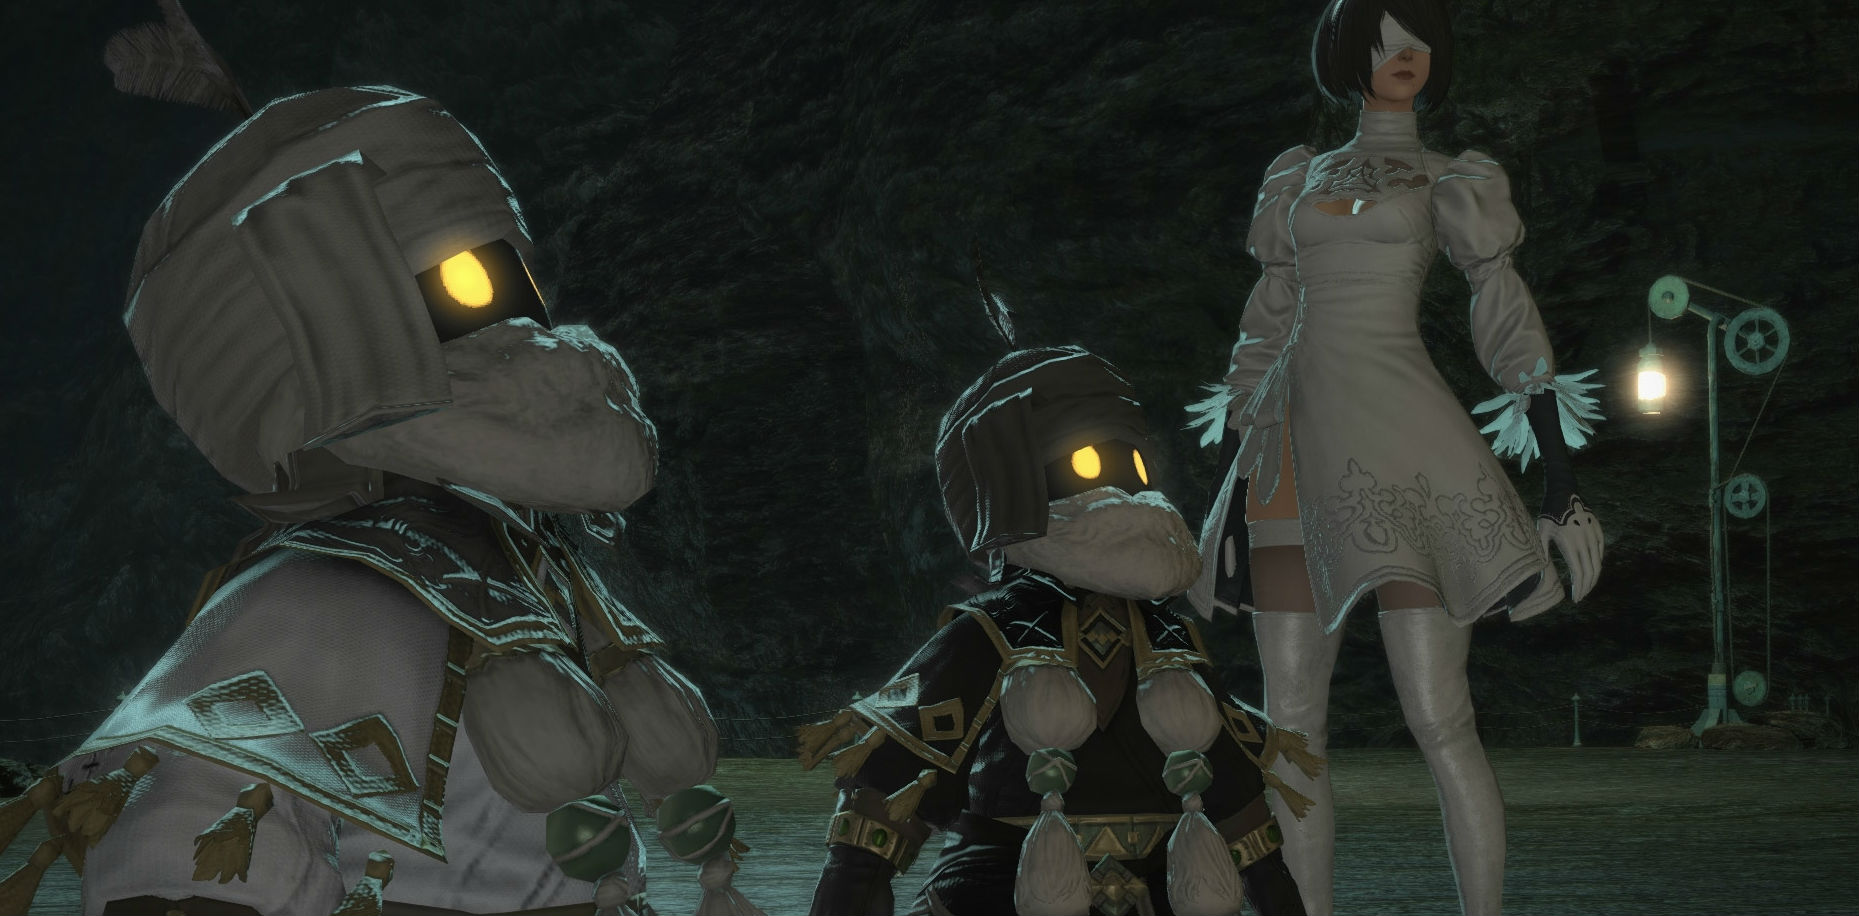 Final Fantasy Xiv Is Running A Free